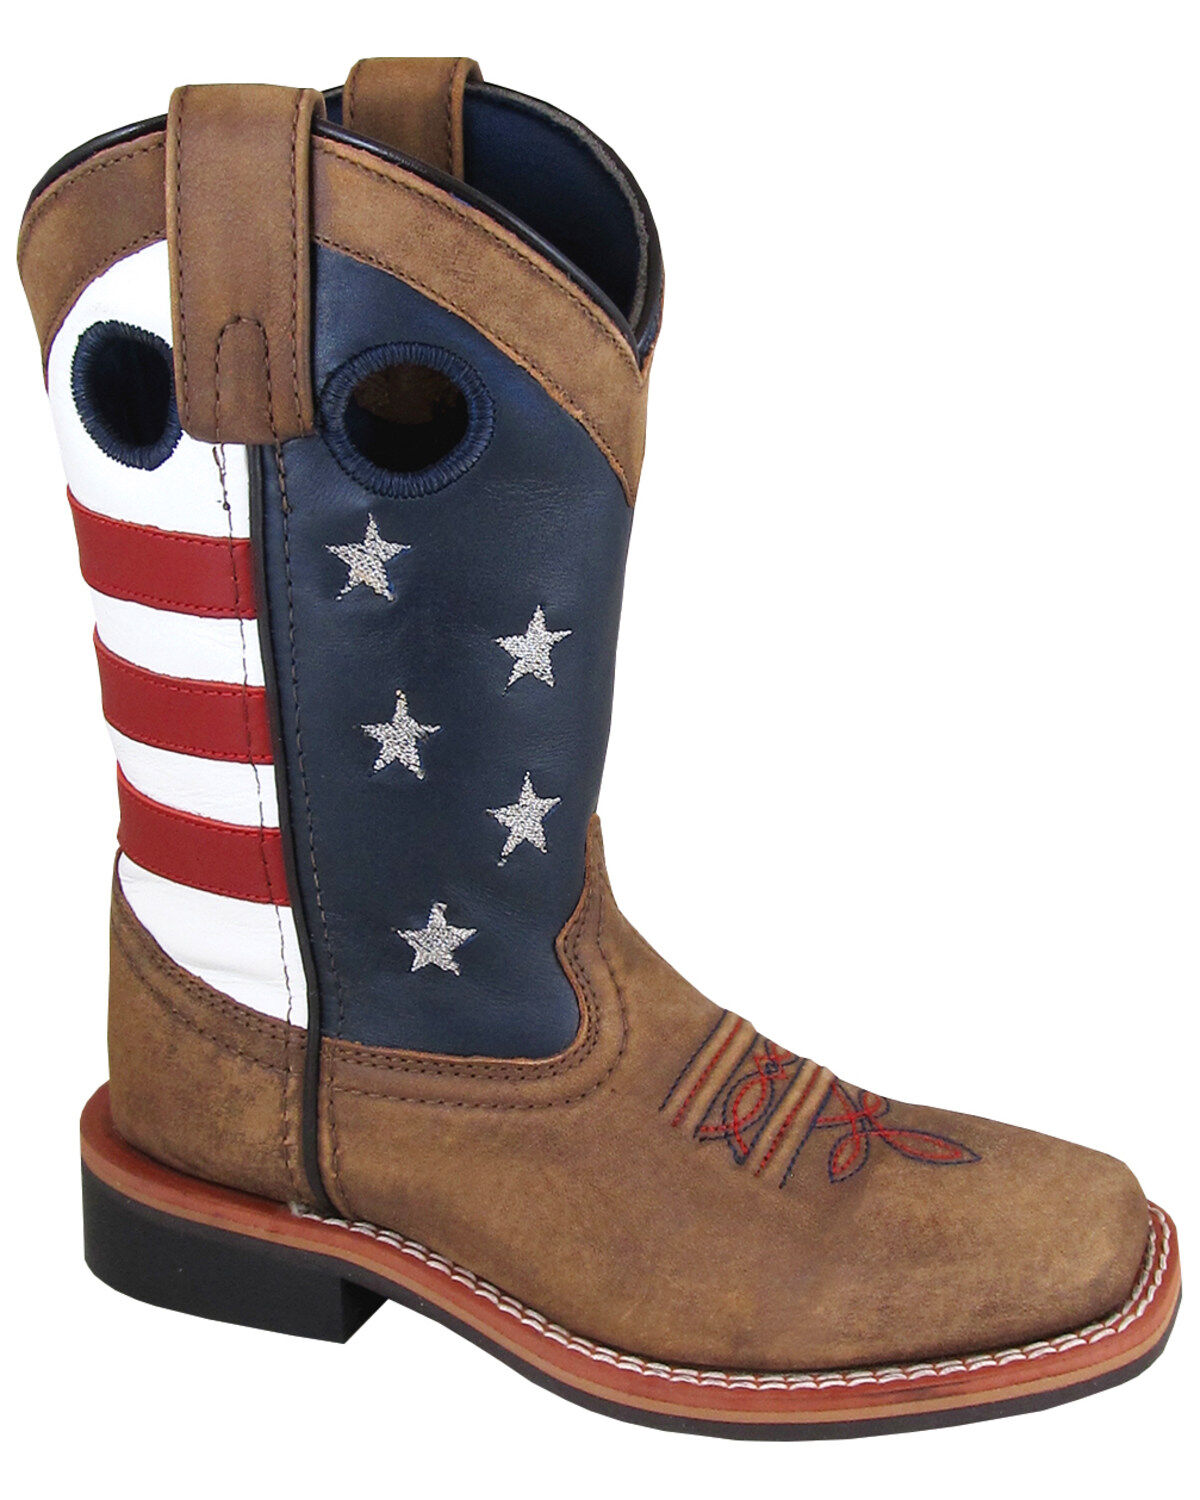 Smoky Mountain Youth Boys Scout Brown//Cream Leather Cowboy Boots